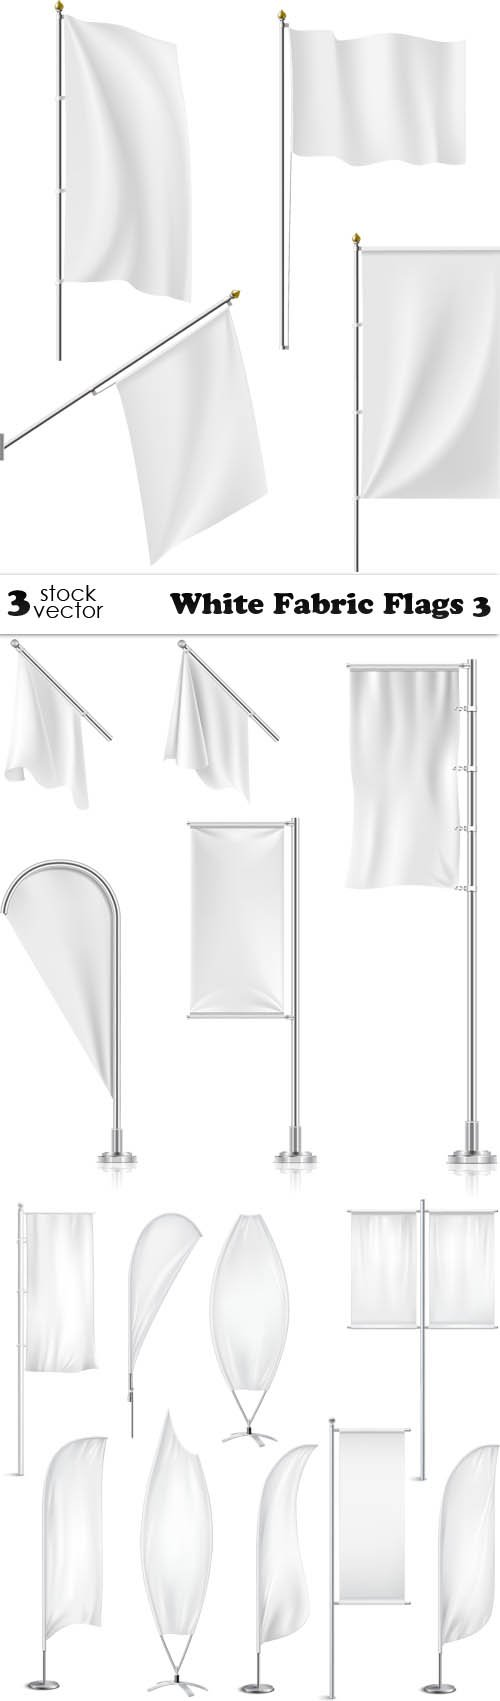 Vectors - White Fabric Flags 3